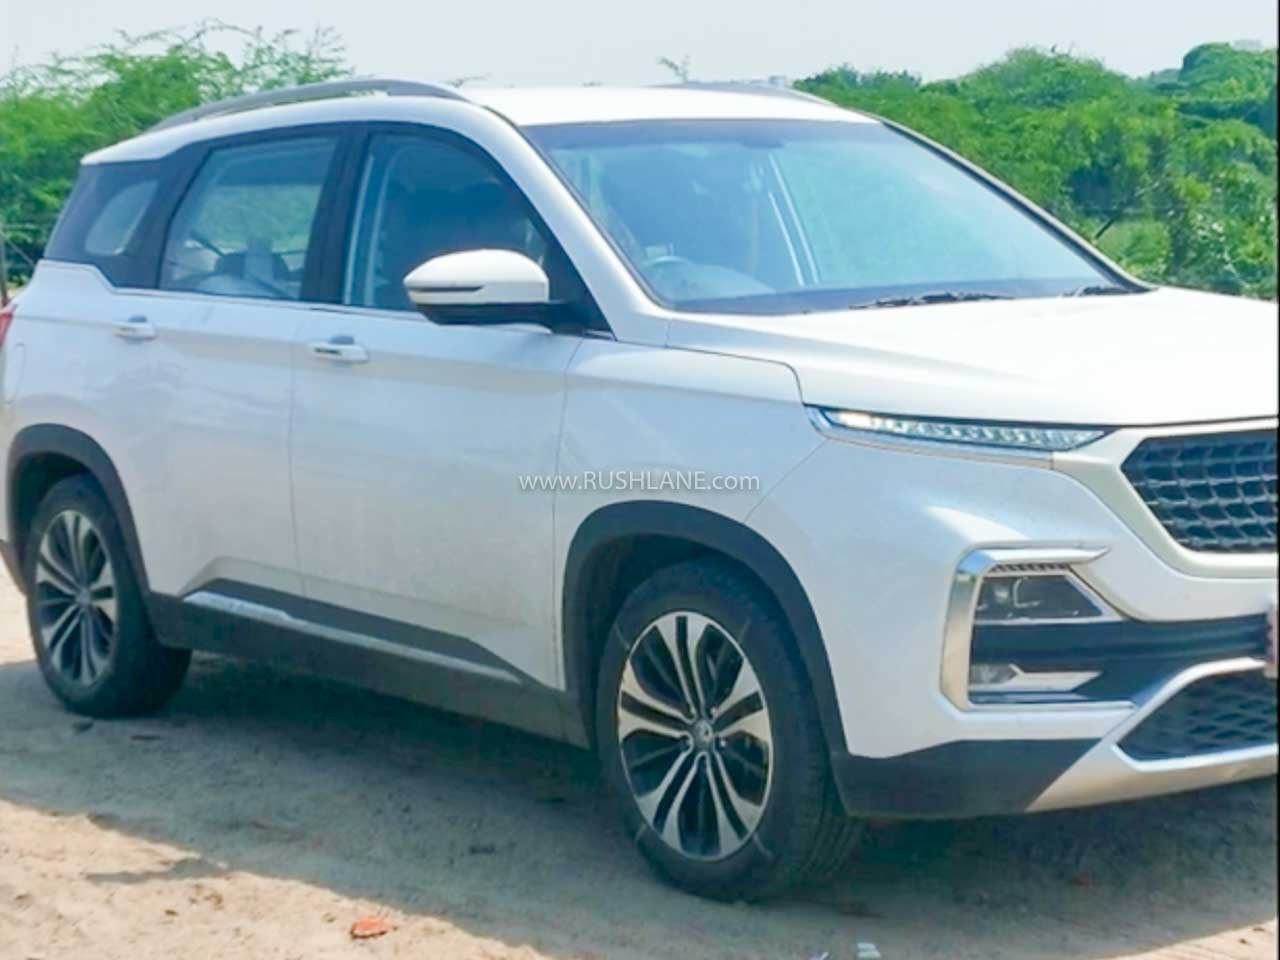 MG Hector Diesel Automatic